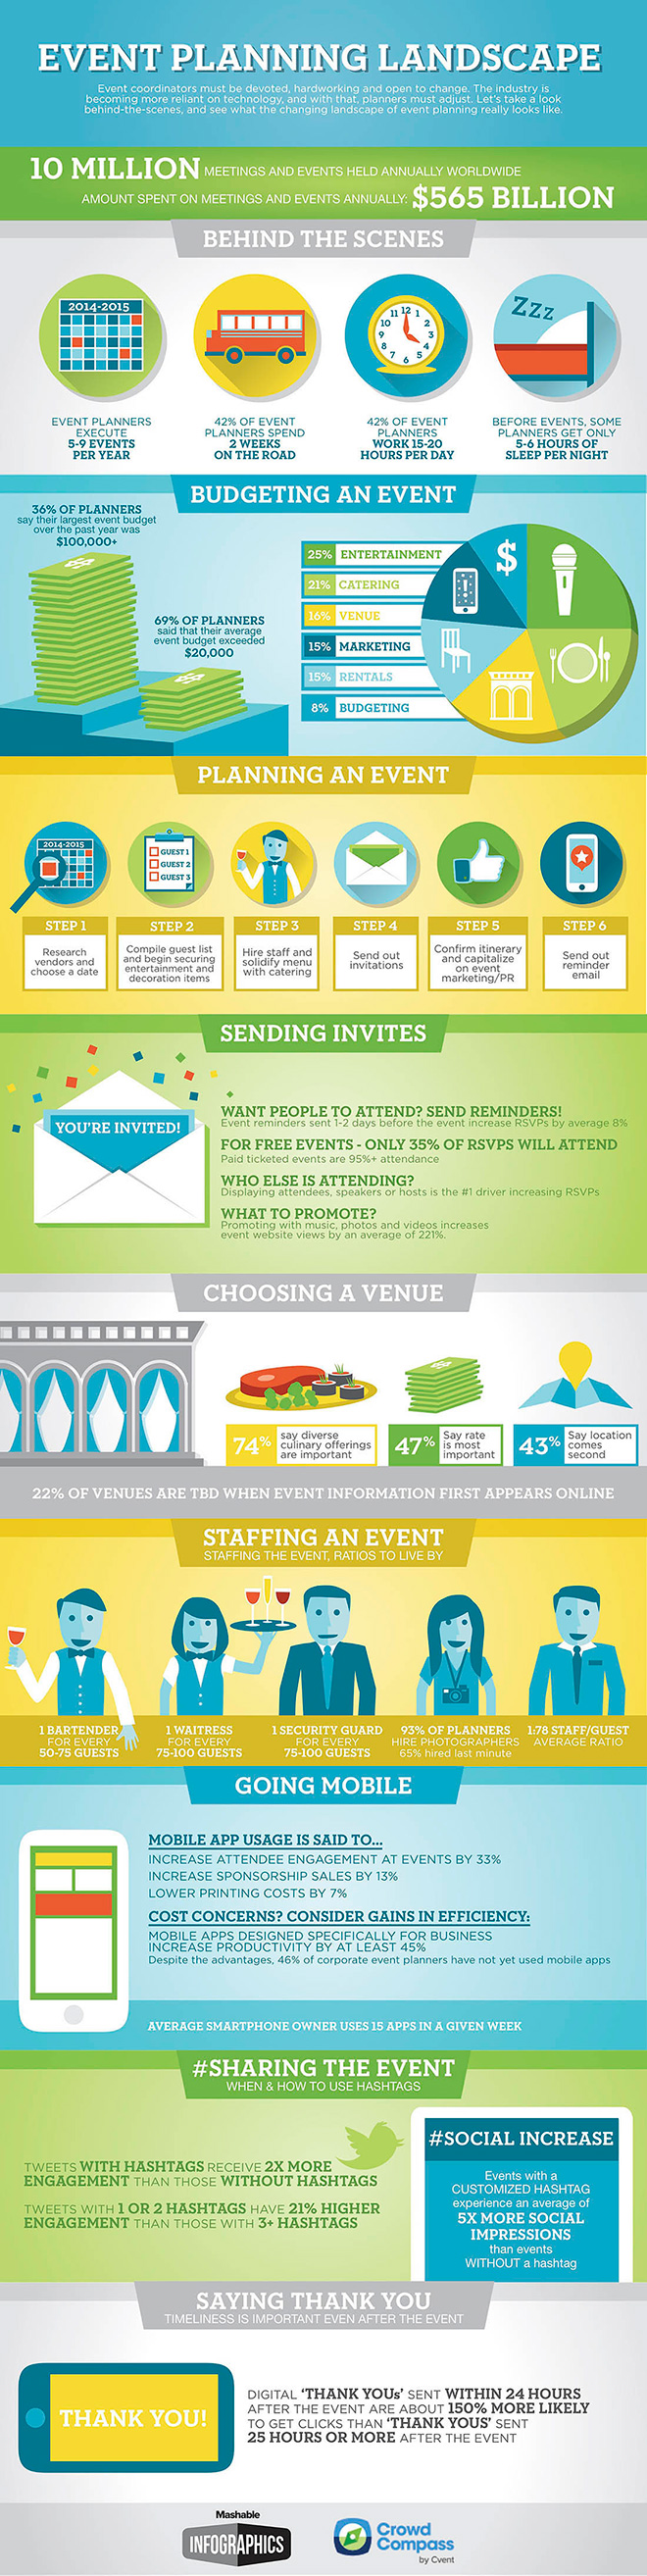 Infographic event planning landscape